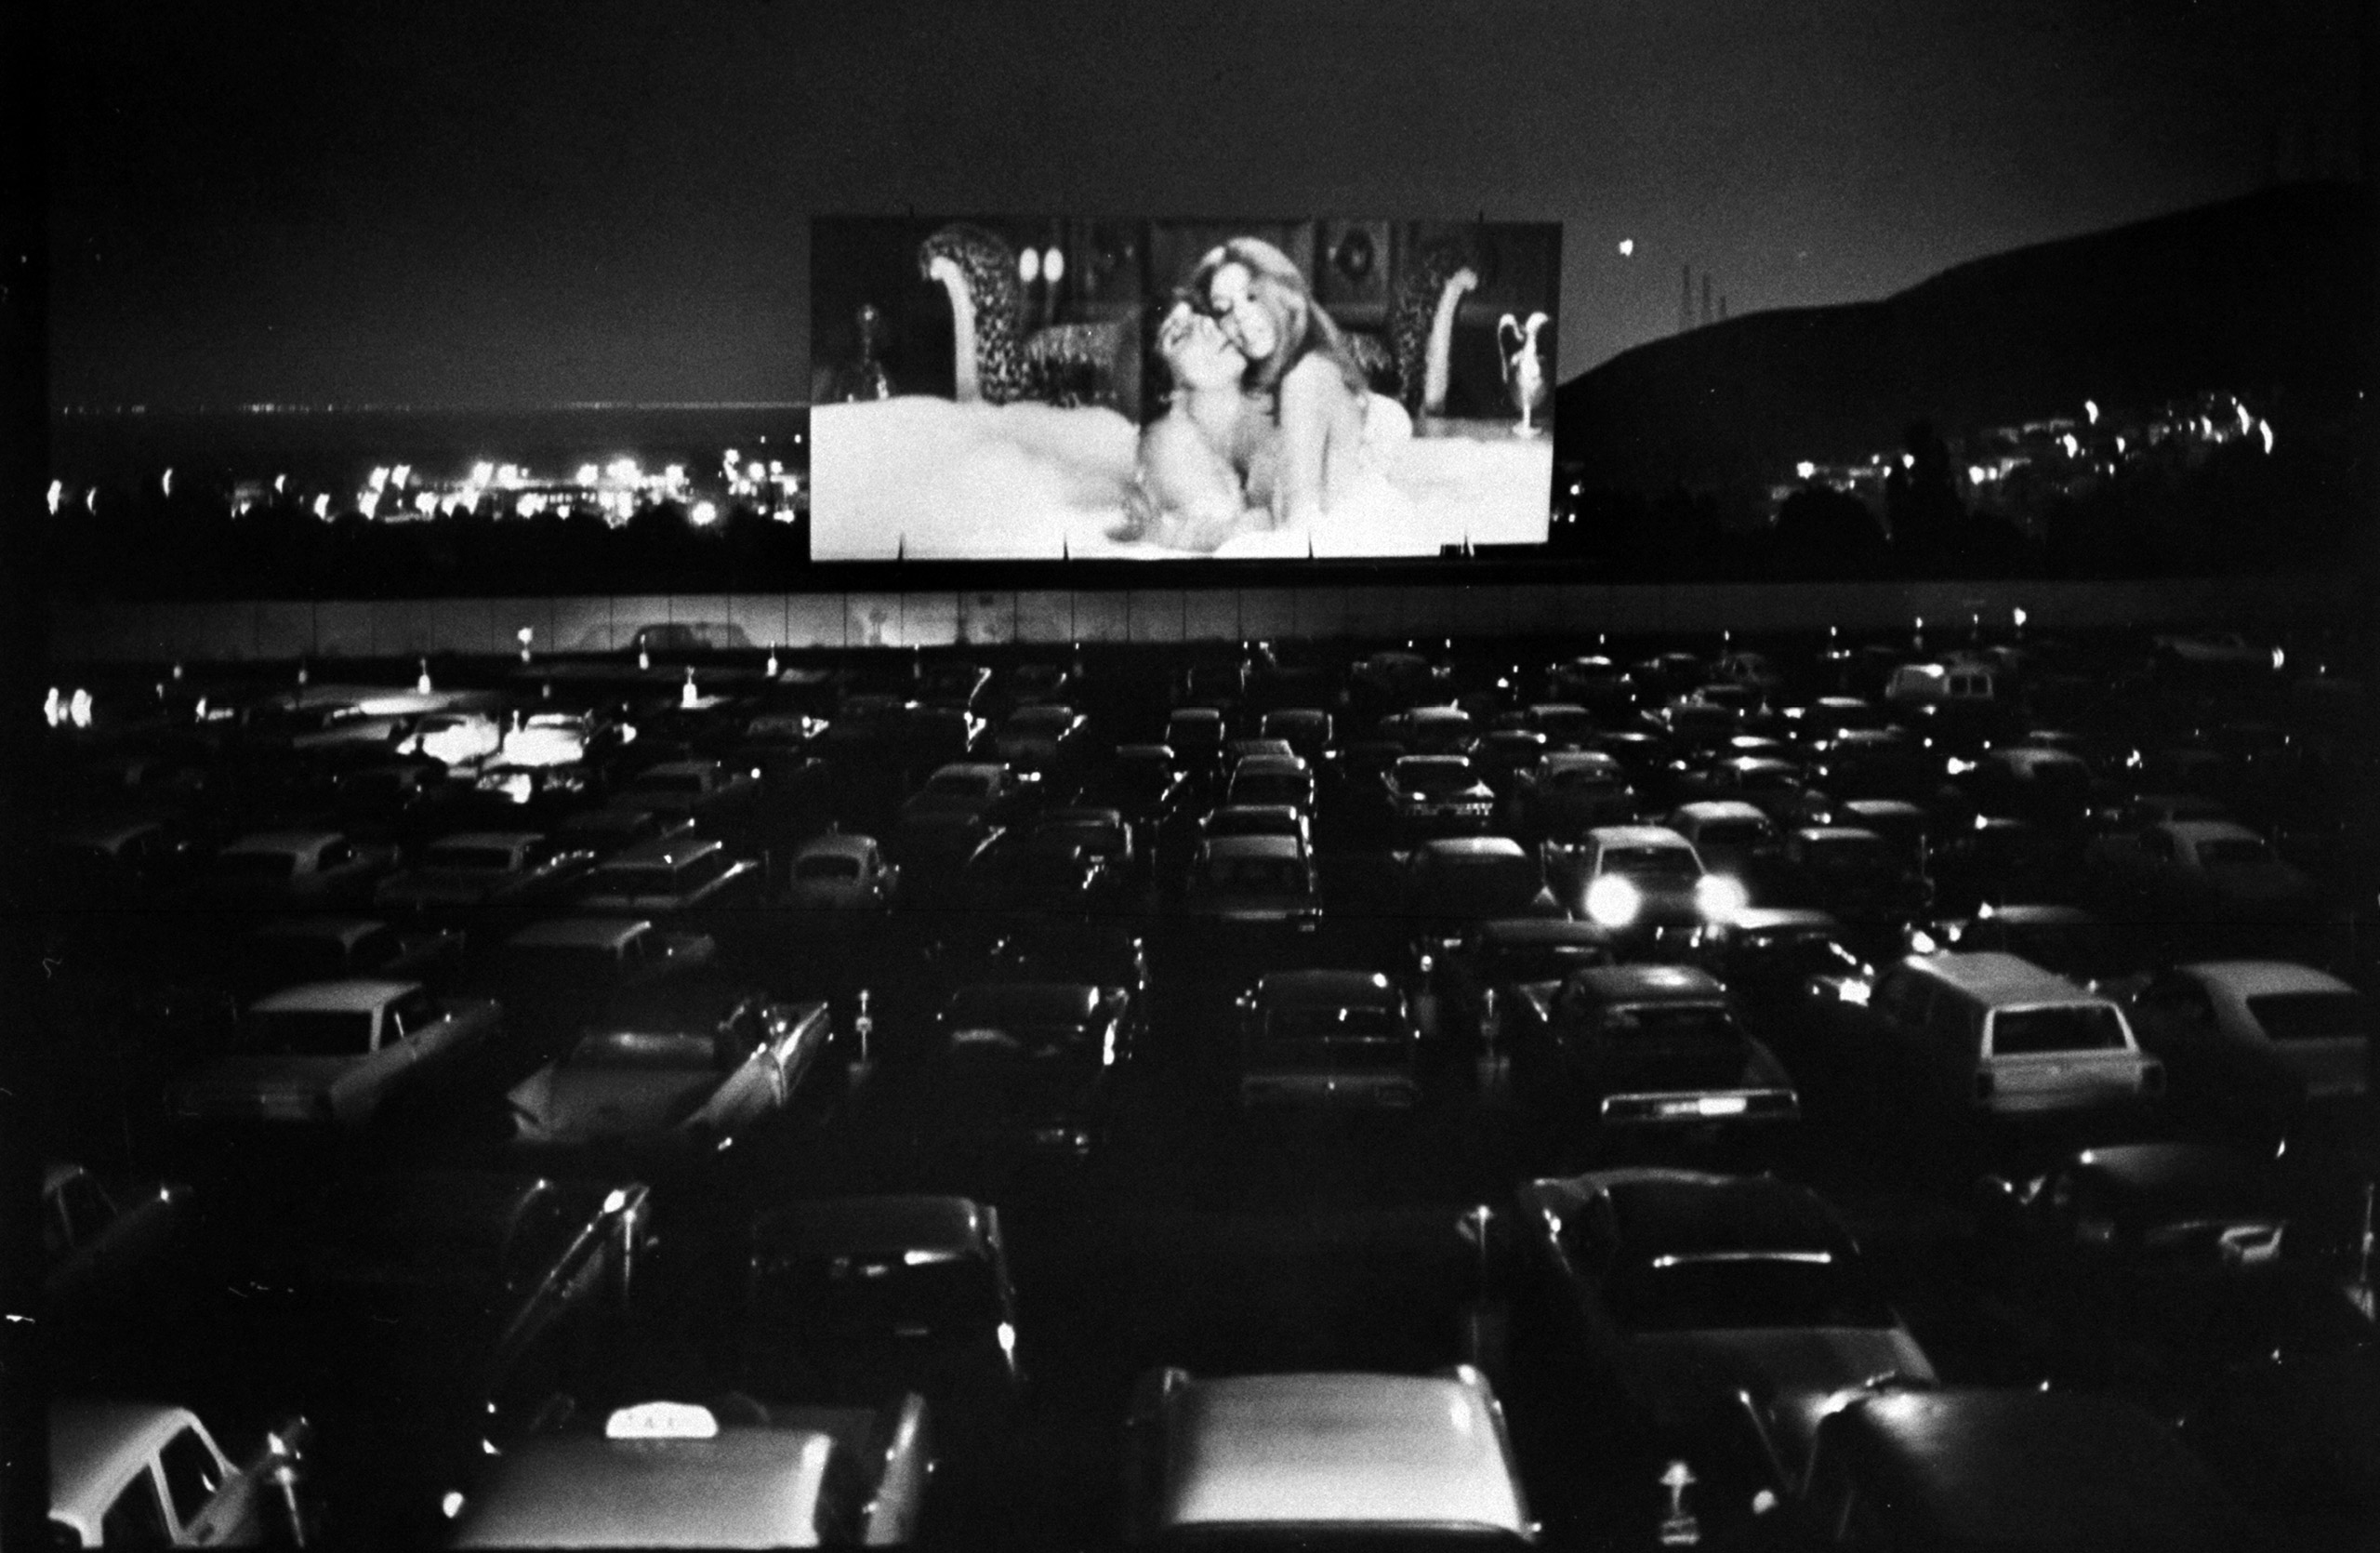 Caption from LIFE. Car-borne moviegoers jam a San Francisco drive-in to watch Beyond the Valley of the Dolls, first high-budget sex film done by Russ Meyer, pioneer  King of the Nudies.